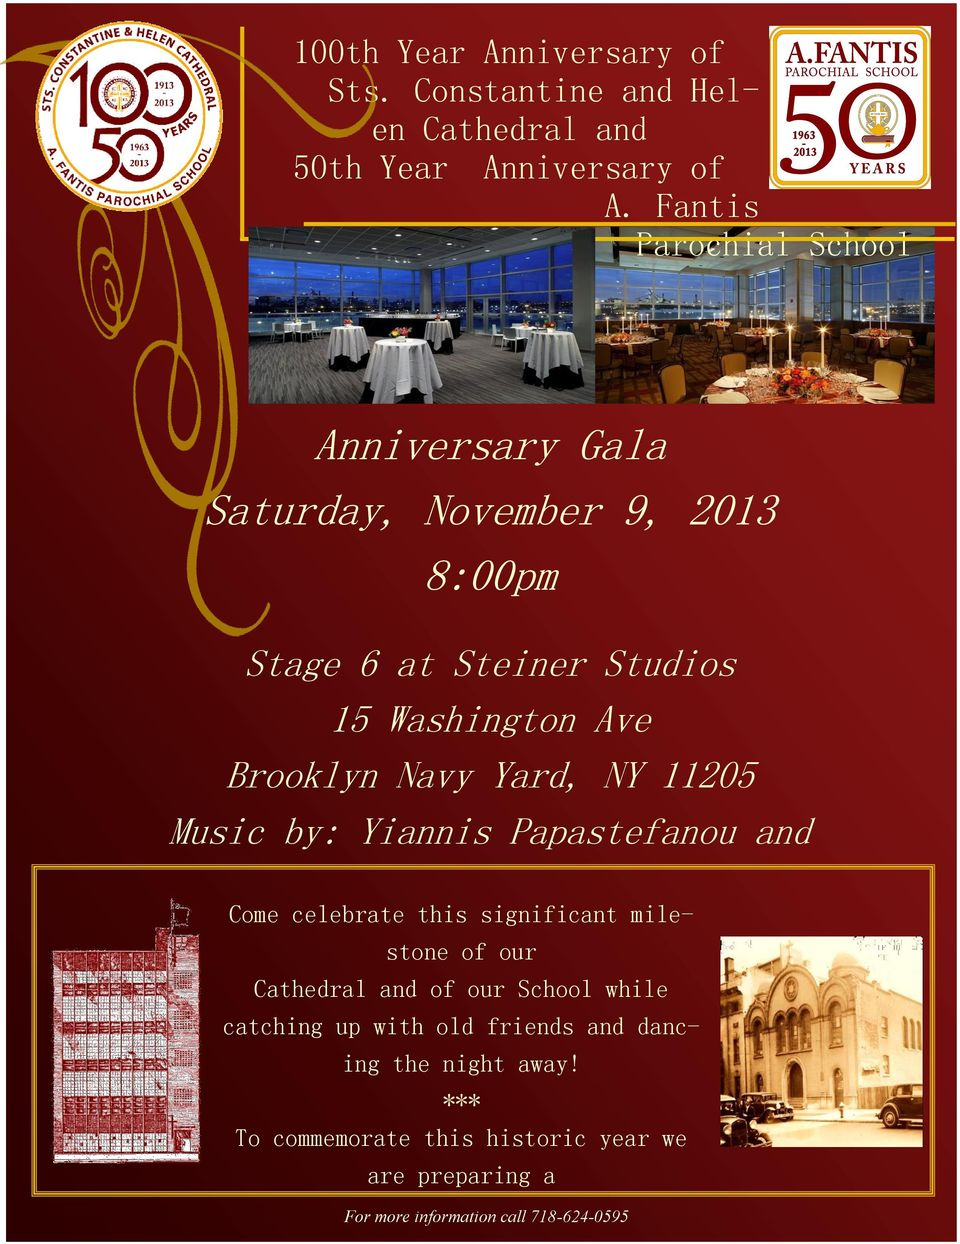 Navy Yard, NY 11205 Music by: Yiannis Papastefanou and Come celebrate this significant milestone of our Cathedral and of our